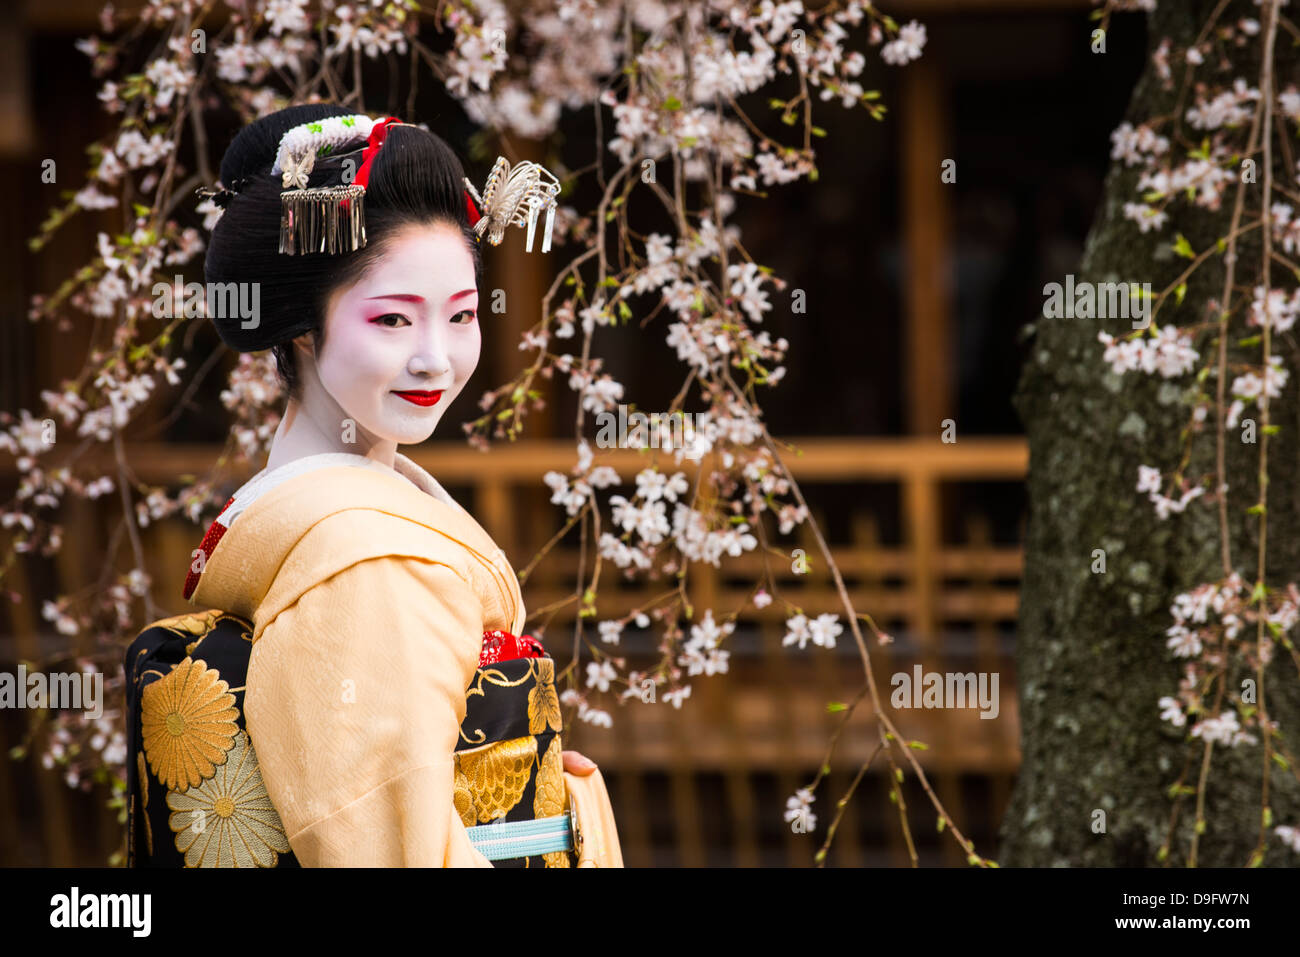 Real Geisha posing before a cherry blossom tree in the Geisha quarter of Gion in Kyoto, Japan - Stock Image